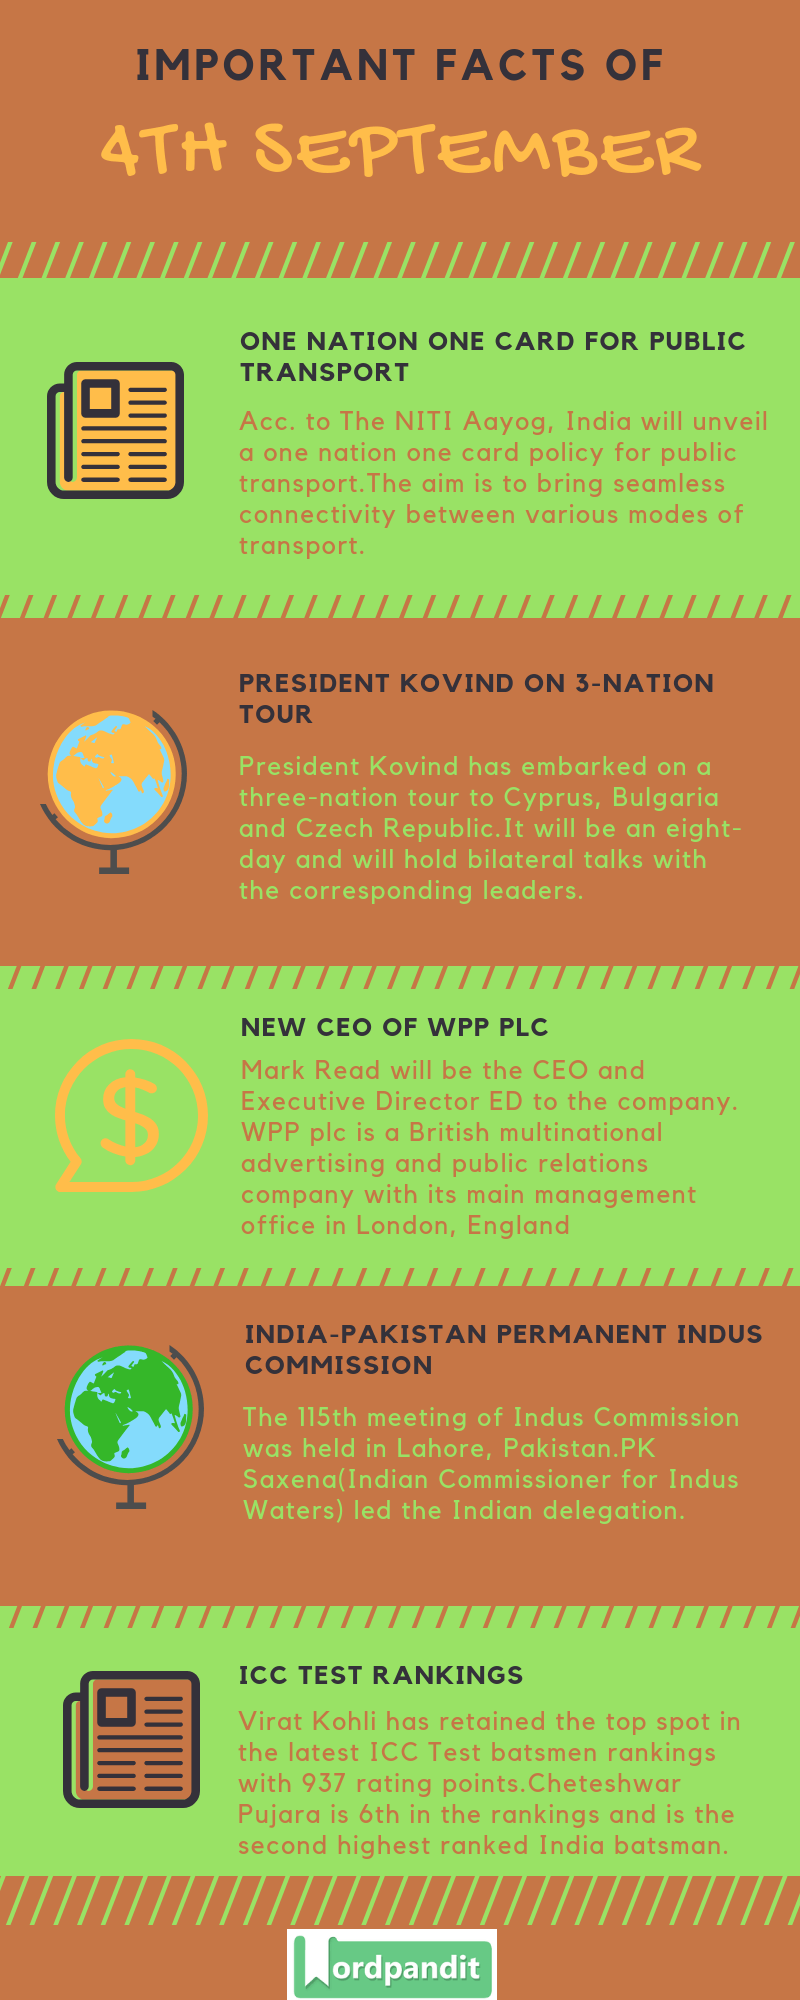 Daily Current Affairs 4 September 2018 Current Affairs Quiz 4 September 2018 Current Affairs Infographic